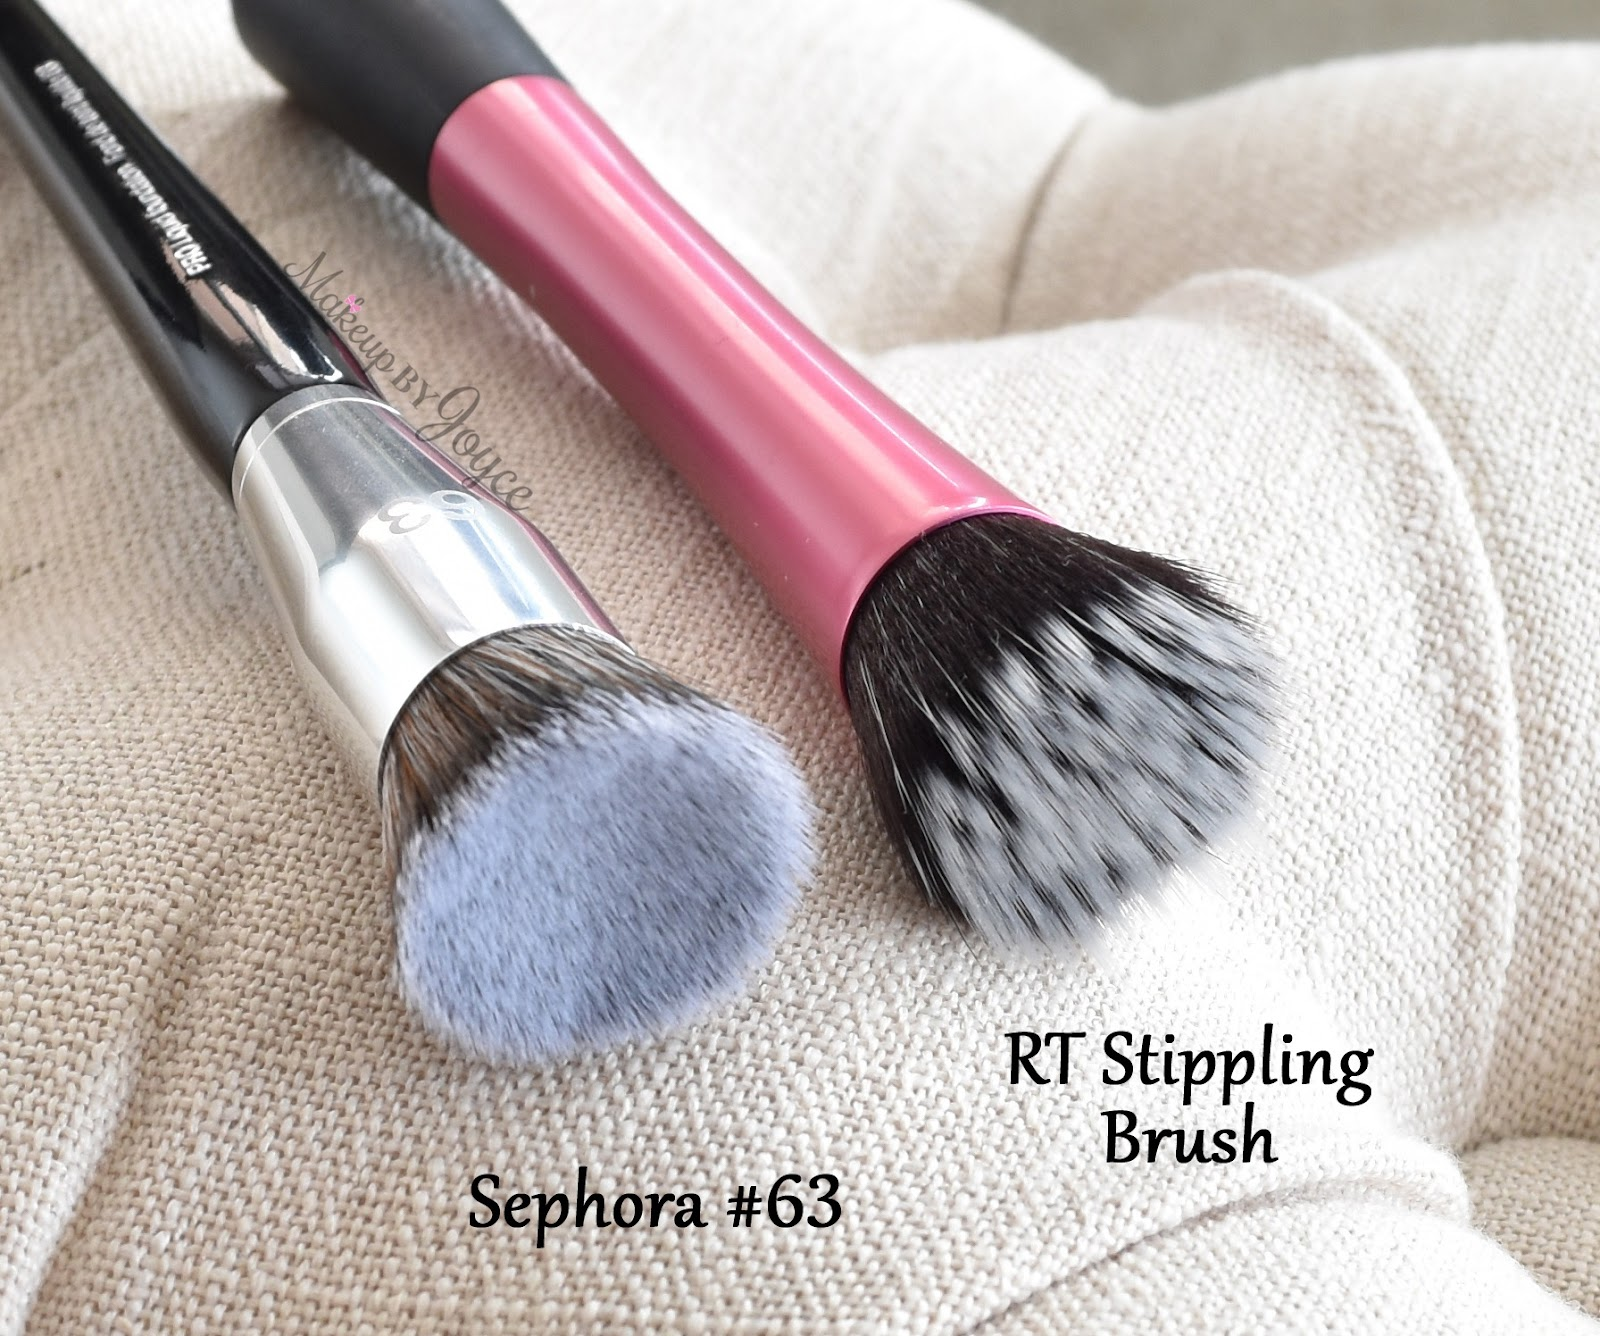 PRO Bent Liner Brush #23 by Sephora Collection #13